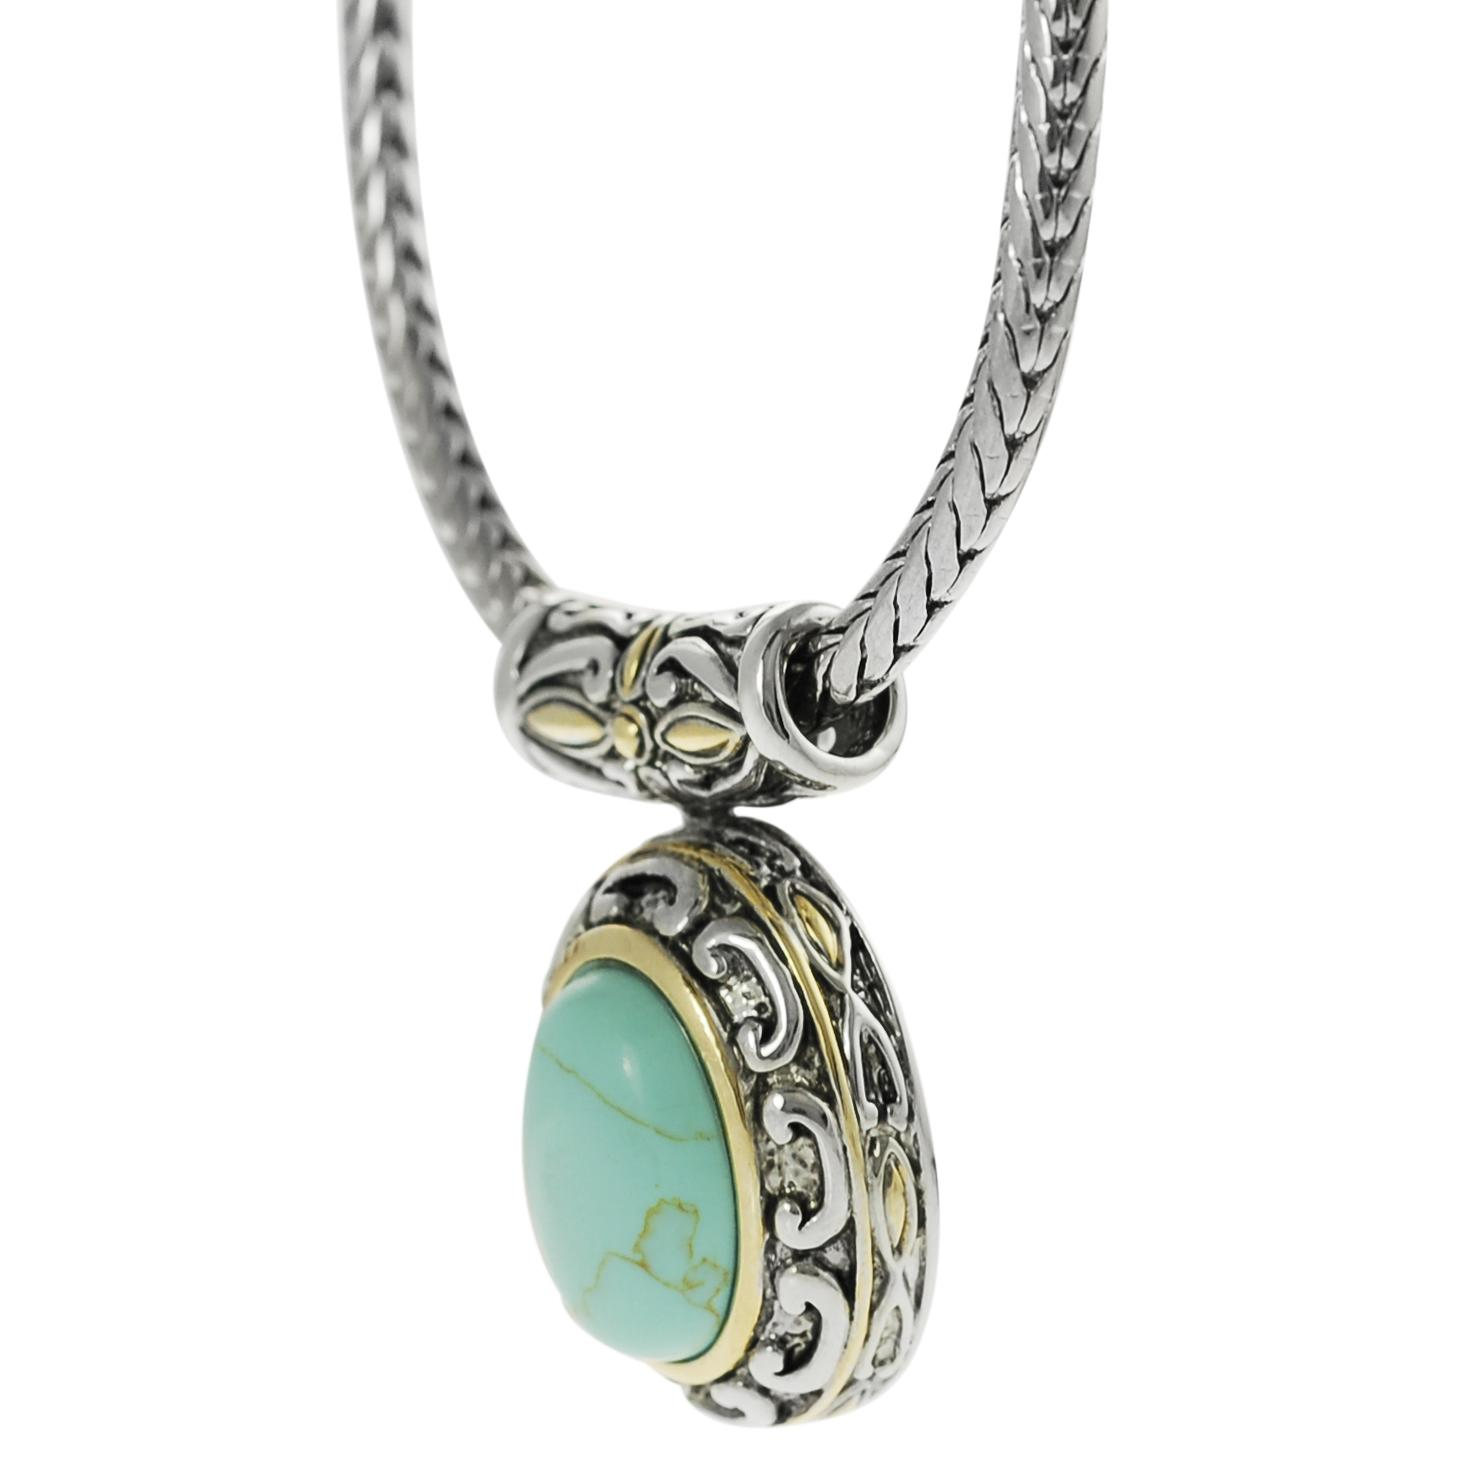 Silvertone and Goldtone Created Turquoise Ornate Necklace - Thumbnail 1